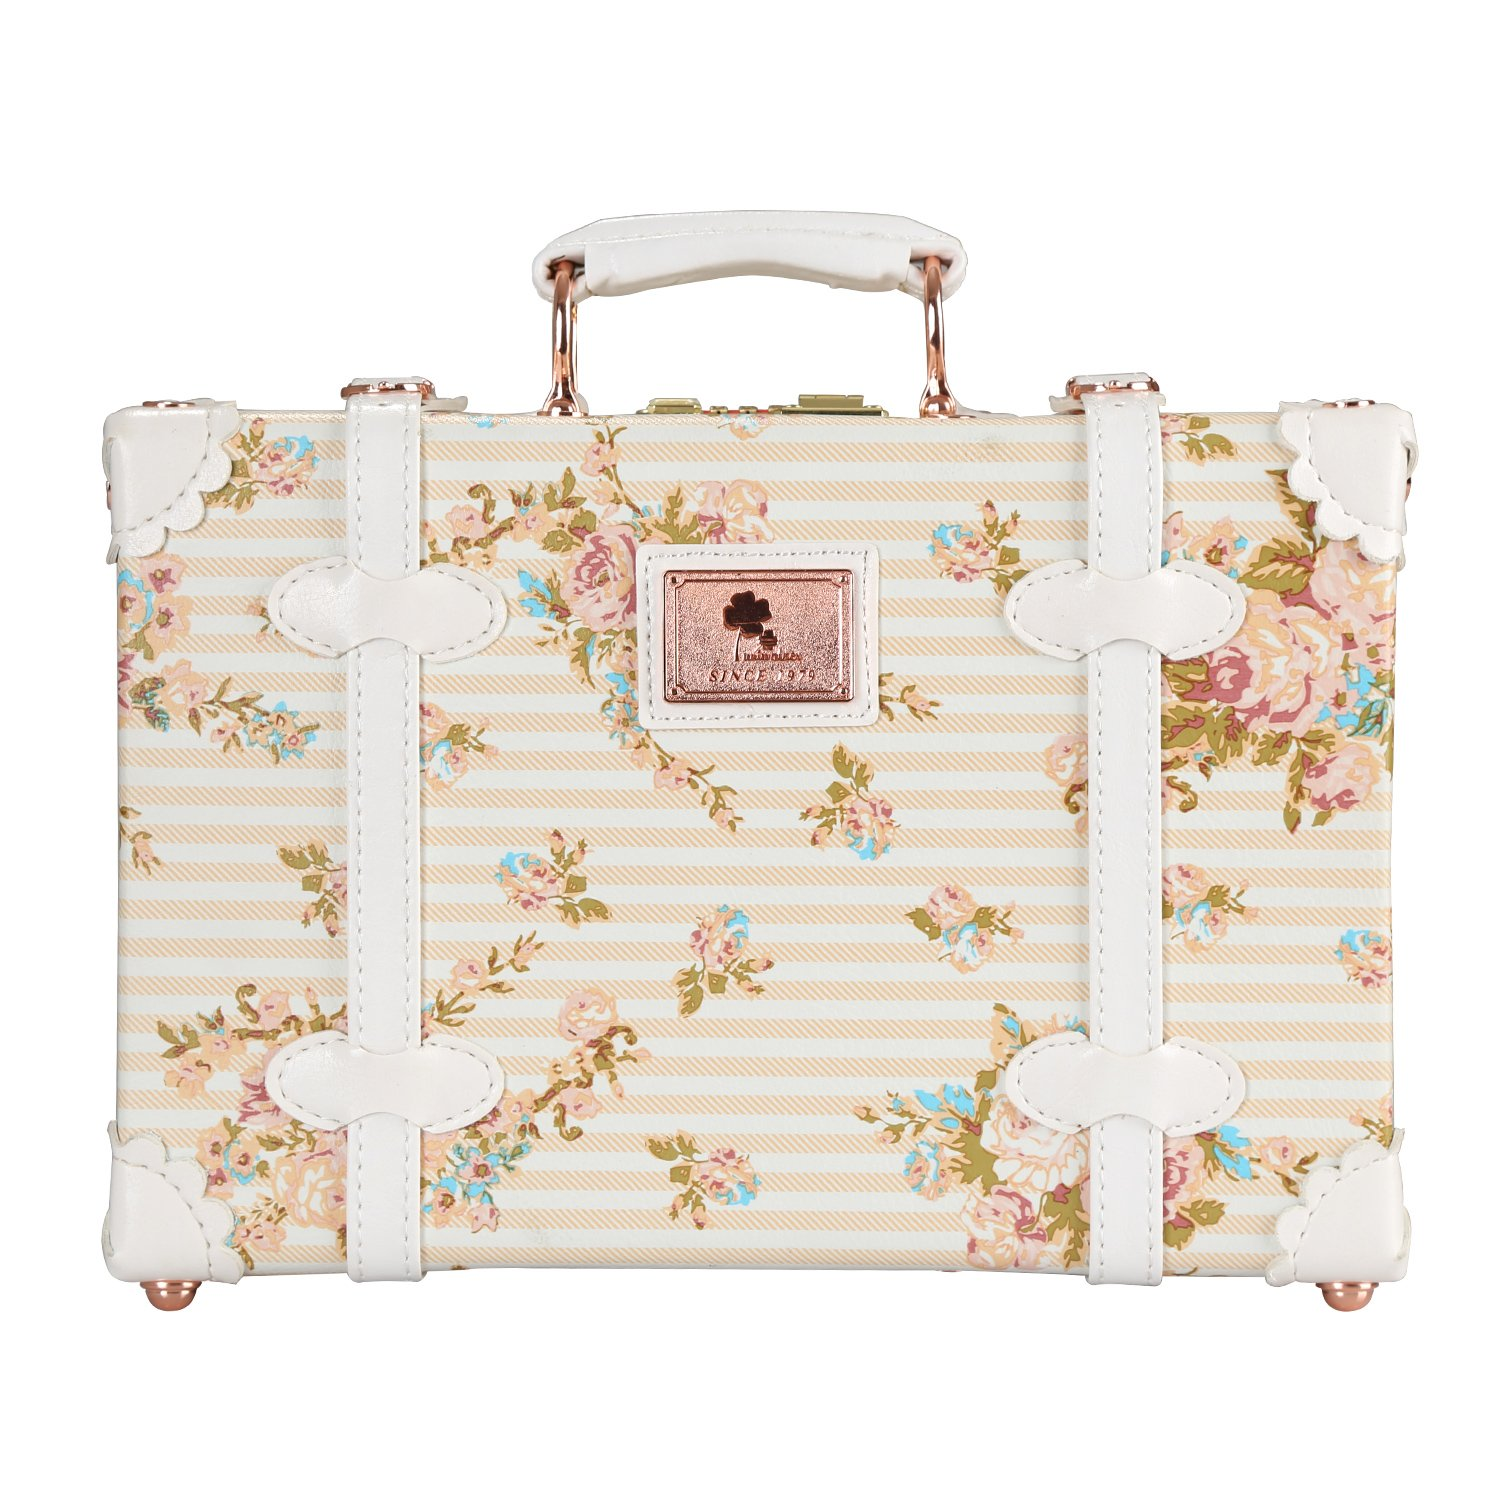 Unitravel Vintage Suitcase PU Leather Small Floral Box with Straps Carry on 12''